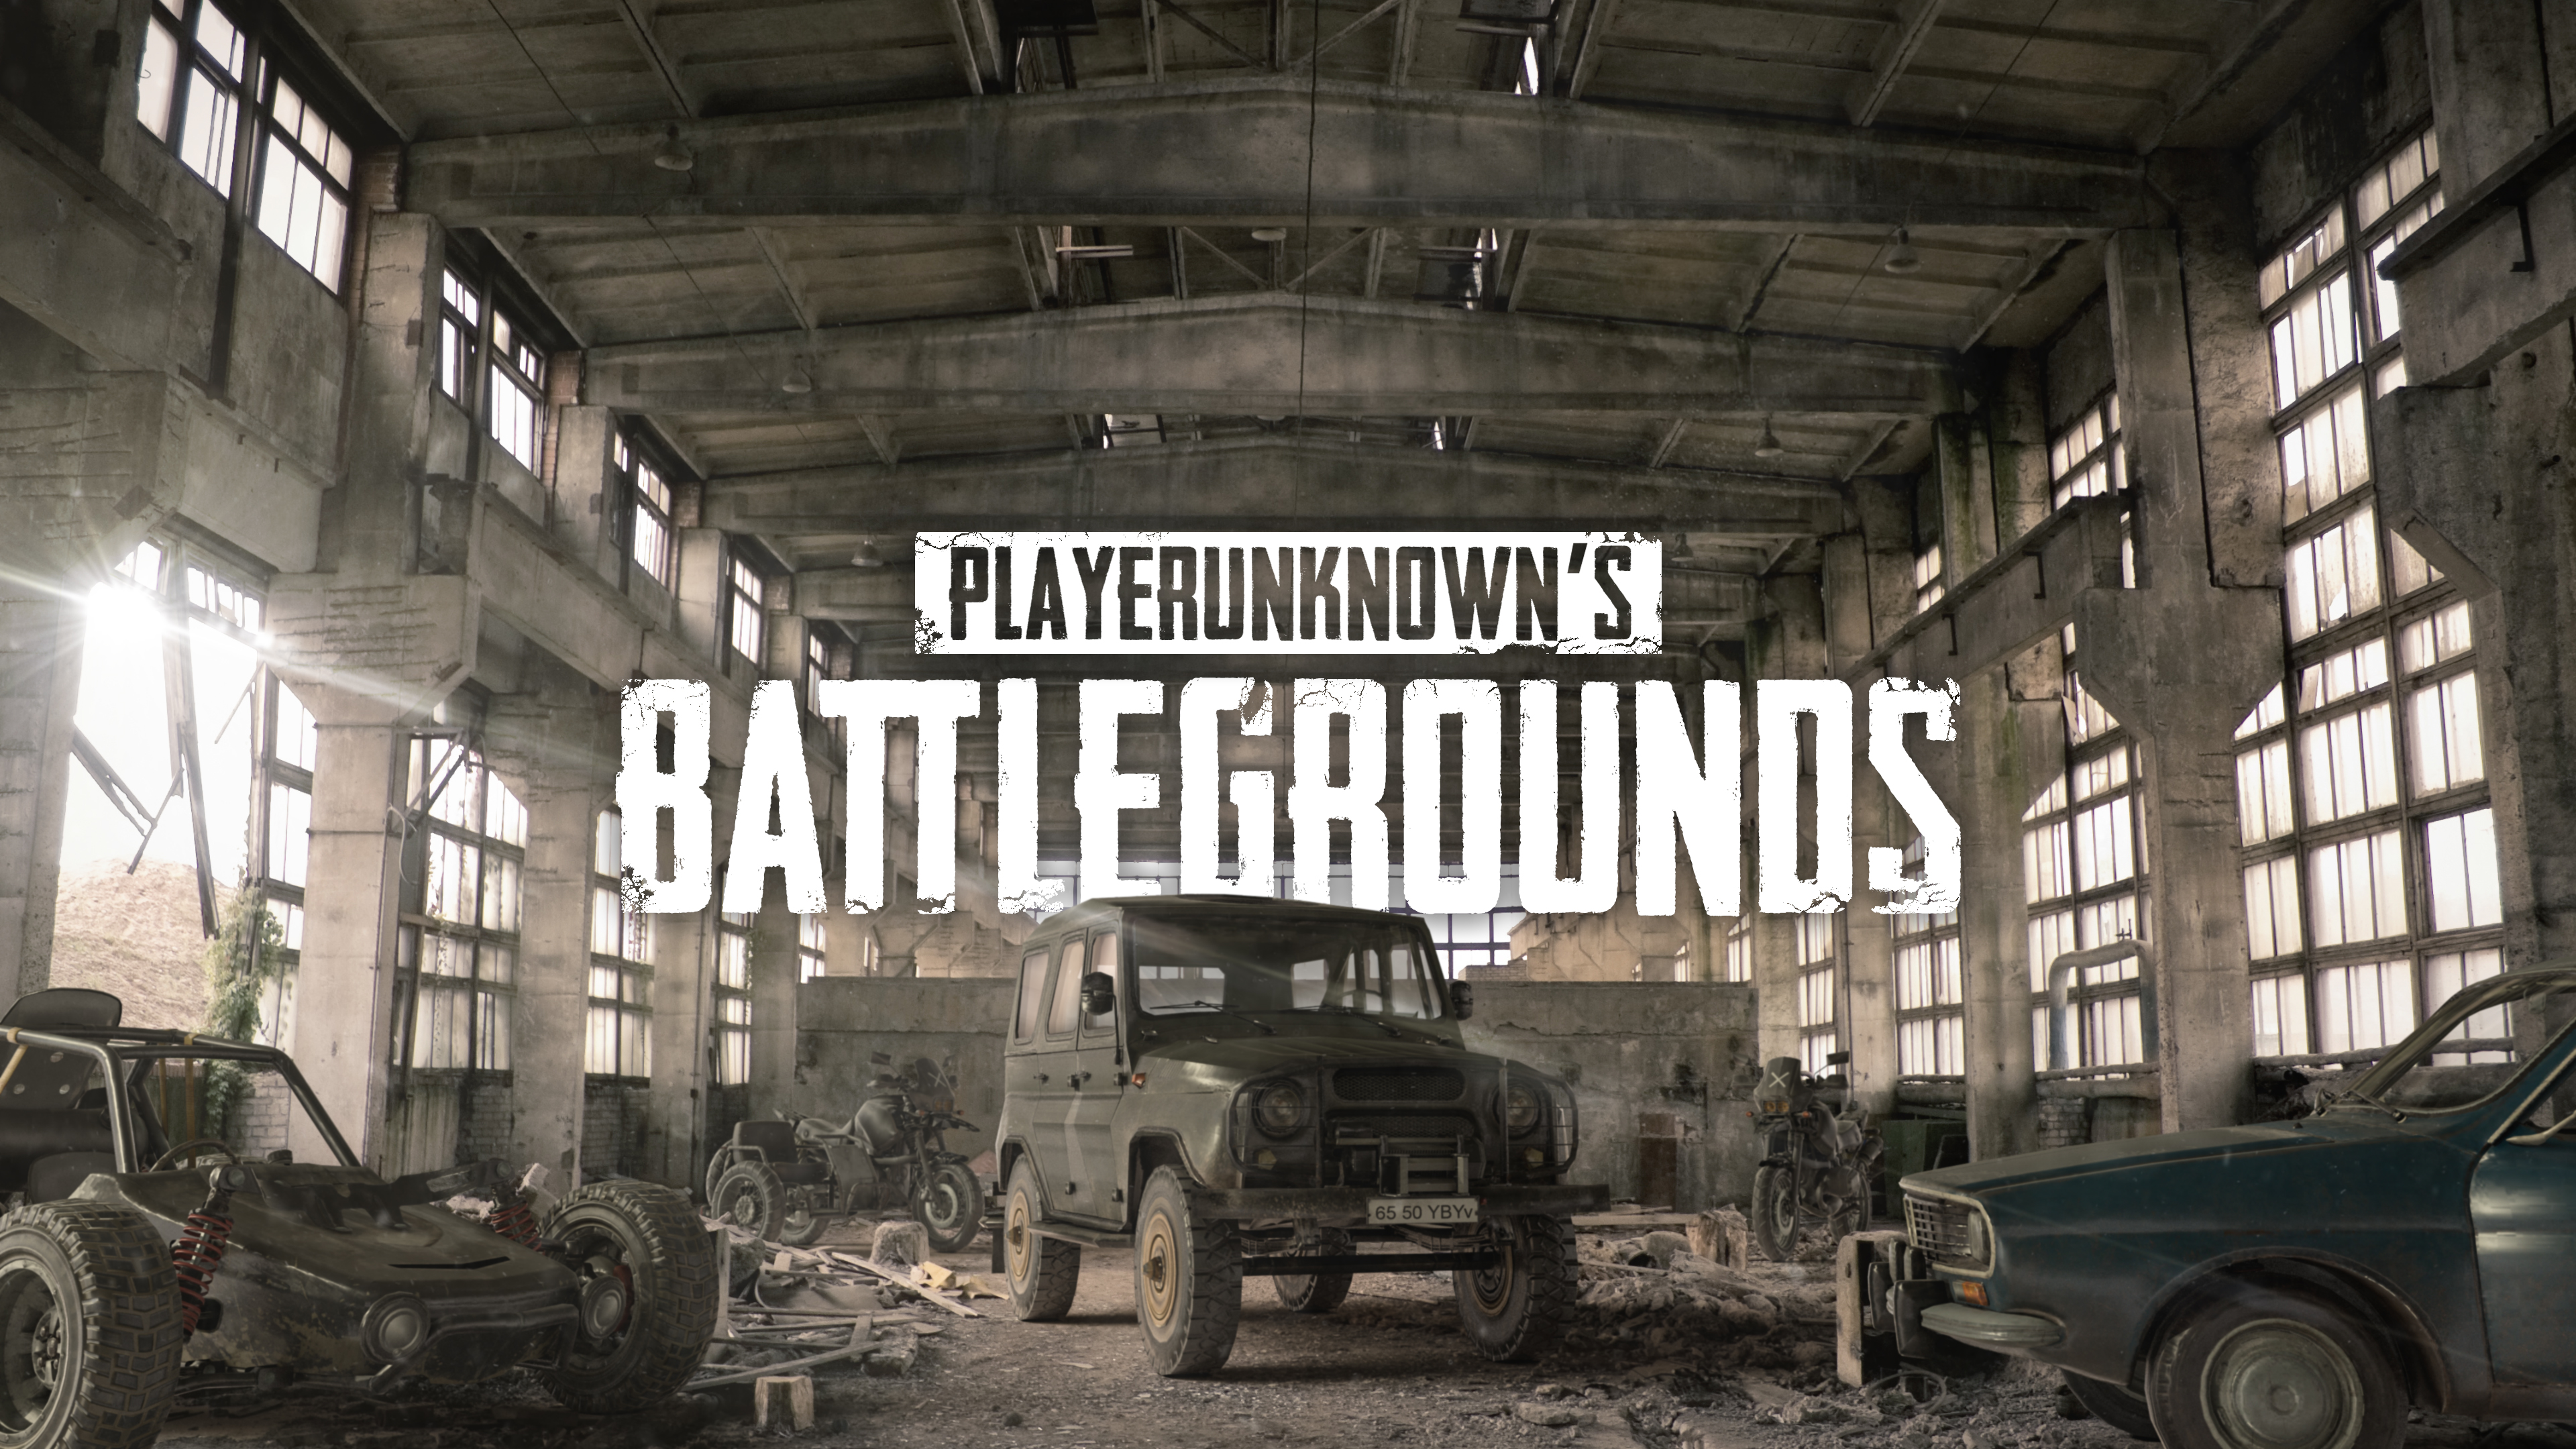 Fondos de pantalla PlayerUnknown's Battlegrounds